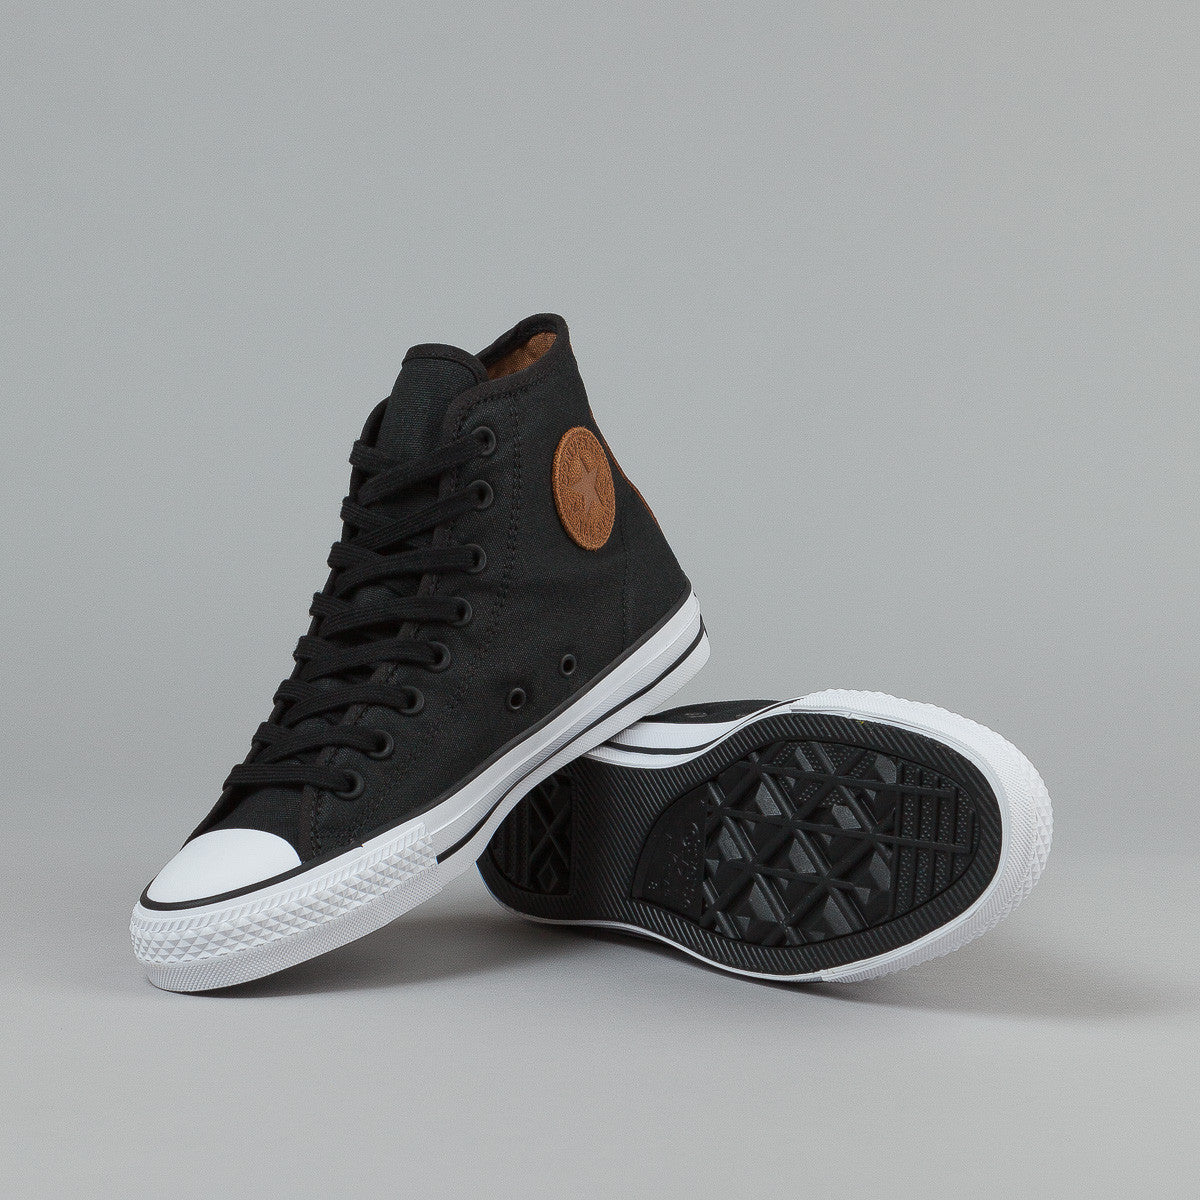 Converse CTAS Pro HI Shoes (Workwear Canvas) - Black / Rubber / White